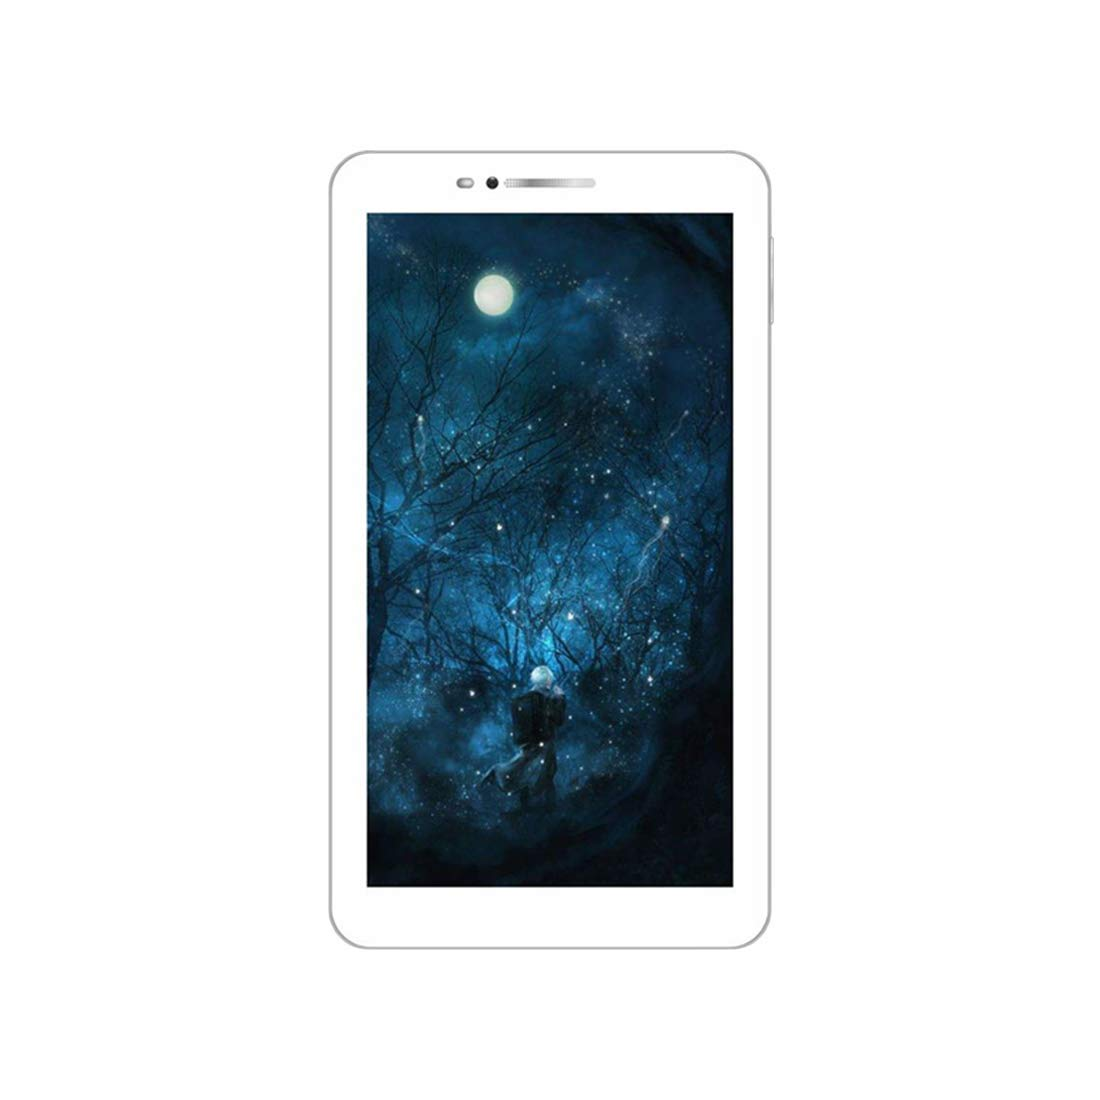 IKall N8 (1+16) Tablet - White